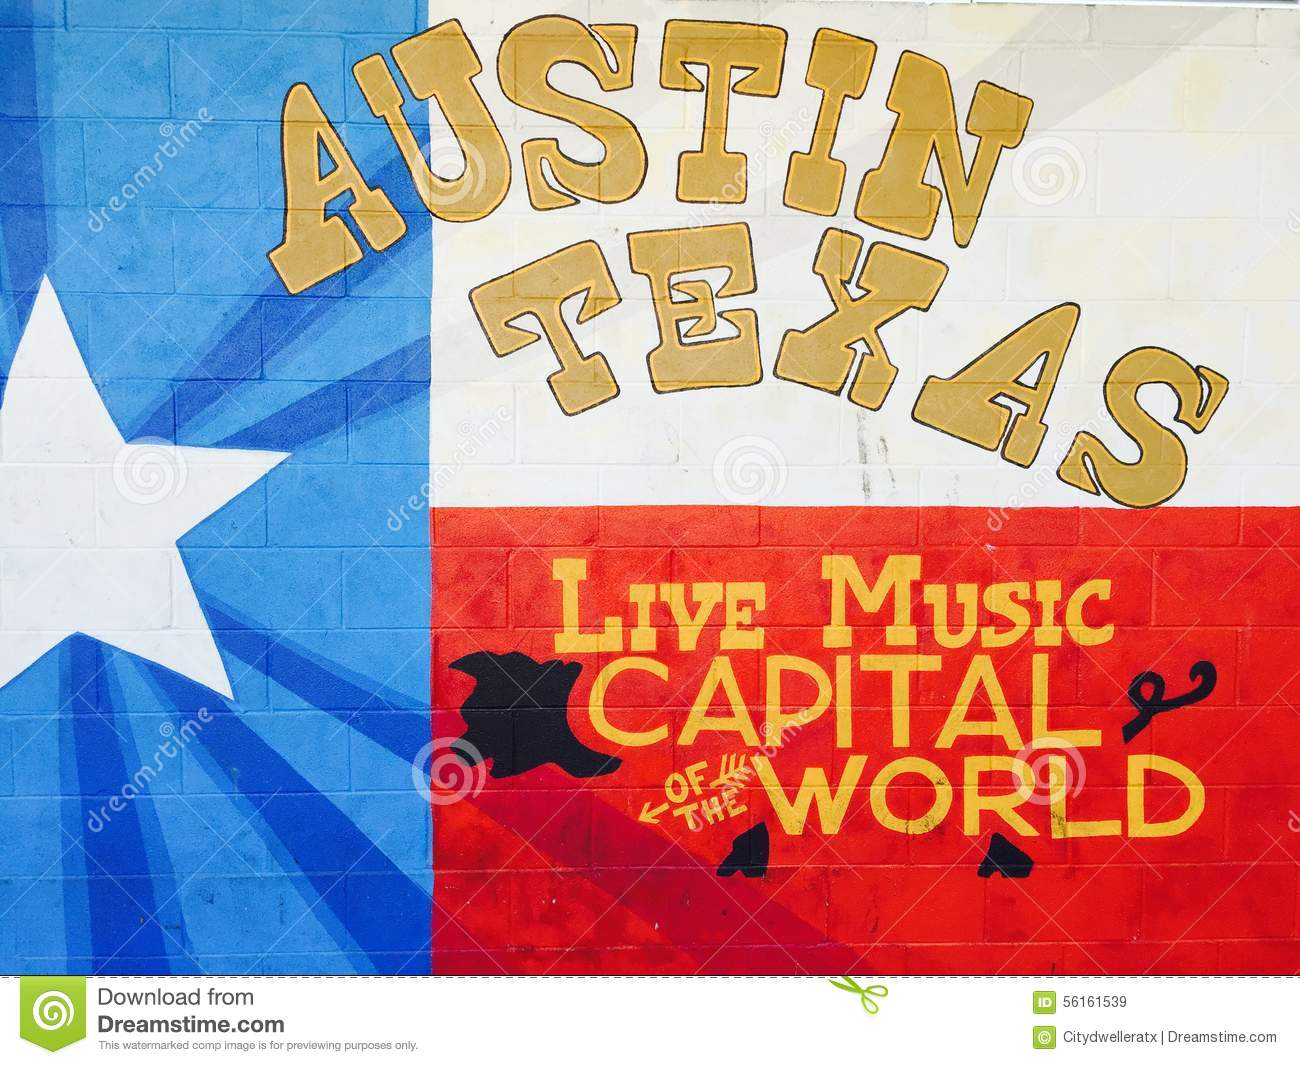 The Live Music Capital of the World - Where is Austin Texas